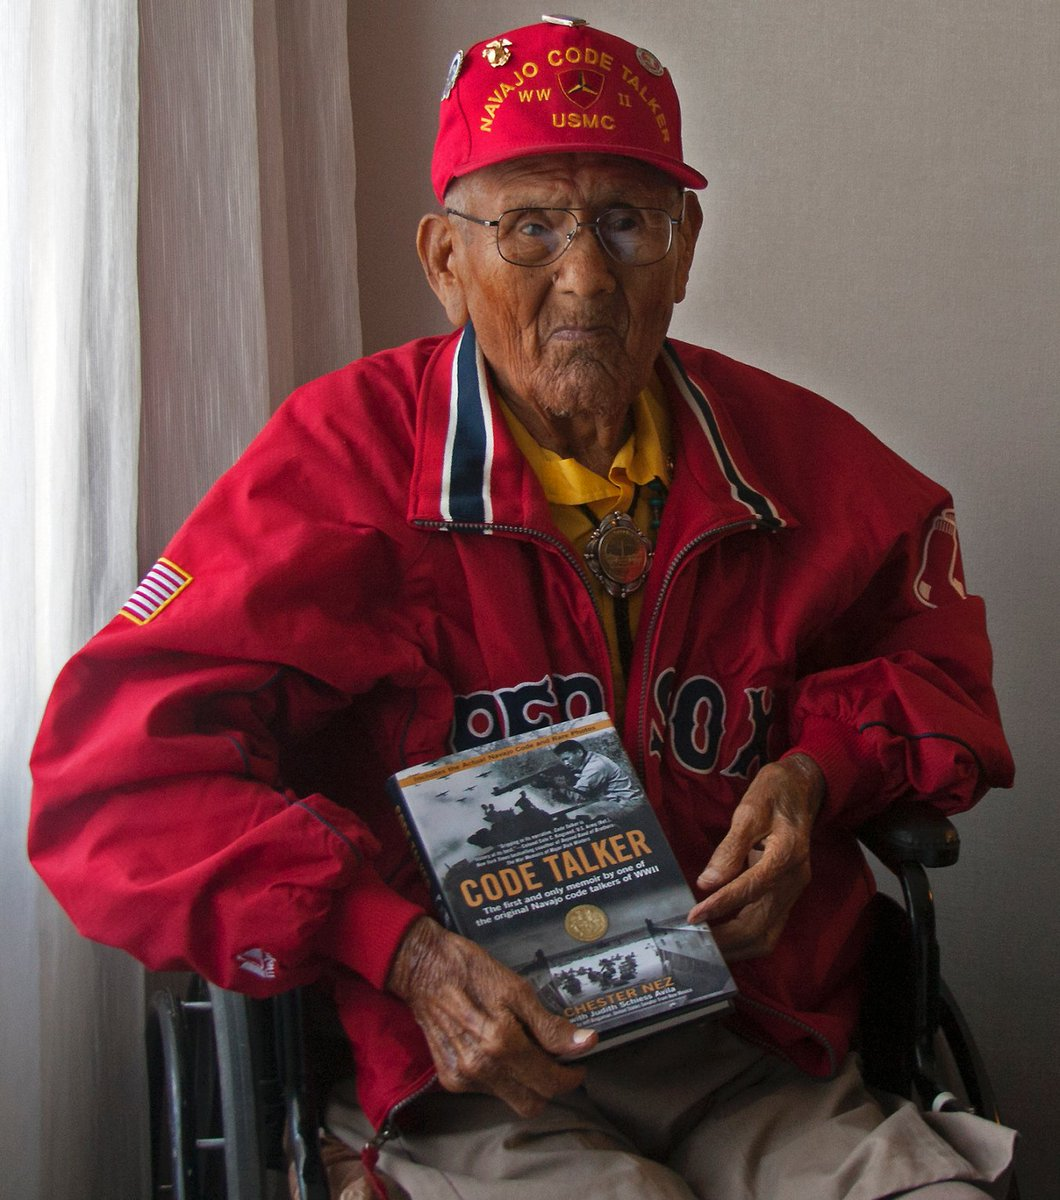 Remembering Chester Nez on Navajo Code Talkers Day.   Twenty-nine men gathered together and created a code that was unbreakable. Chester Nez, seen here in 2013, was the last original Navajo Code Talker before he died in 2014. (@mjtibbs /Stars and Stripes)  https://www. stripes.com/navajo-code-ta lker-chester-nez-telling-a-tale-of-bravery-and-ingenuity-1.253099 &nbsp; … <br>http://pic.twitter.com/svek7OkAKh